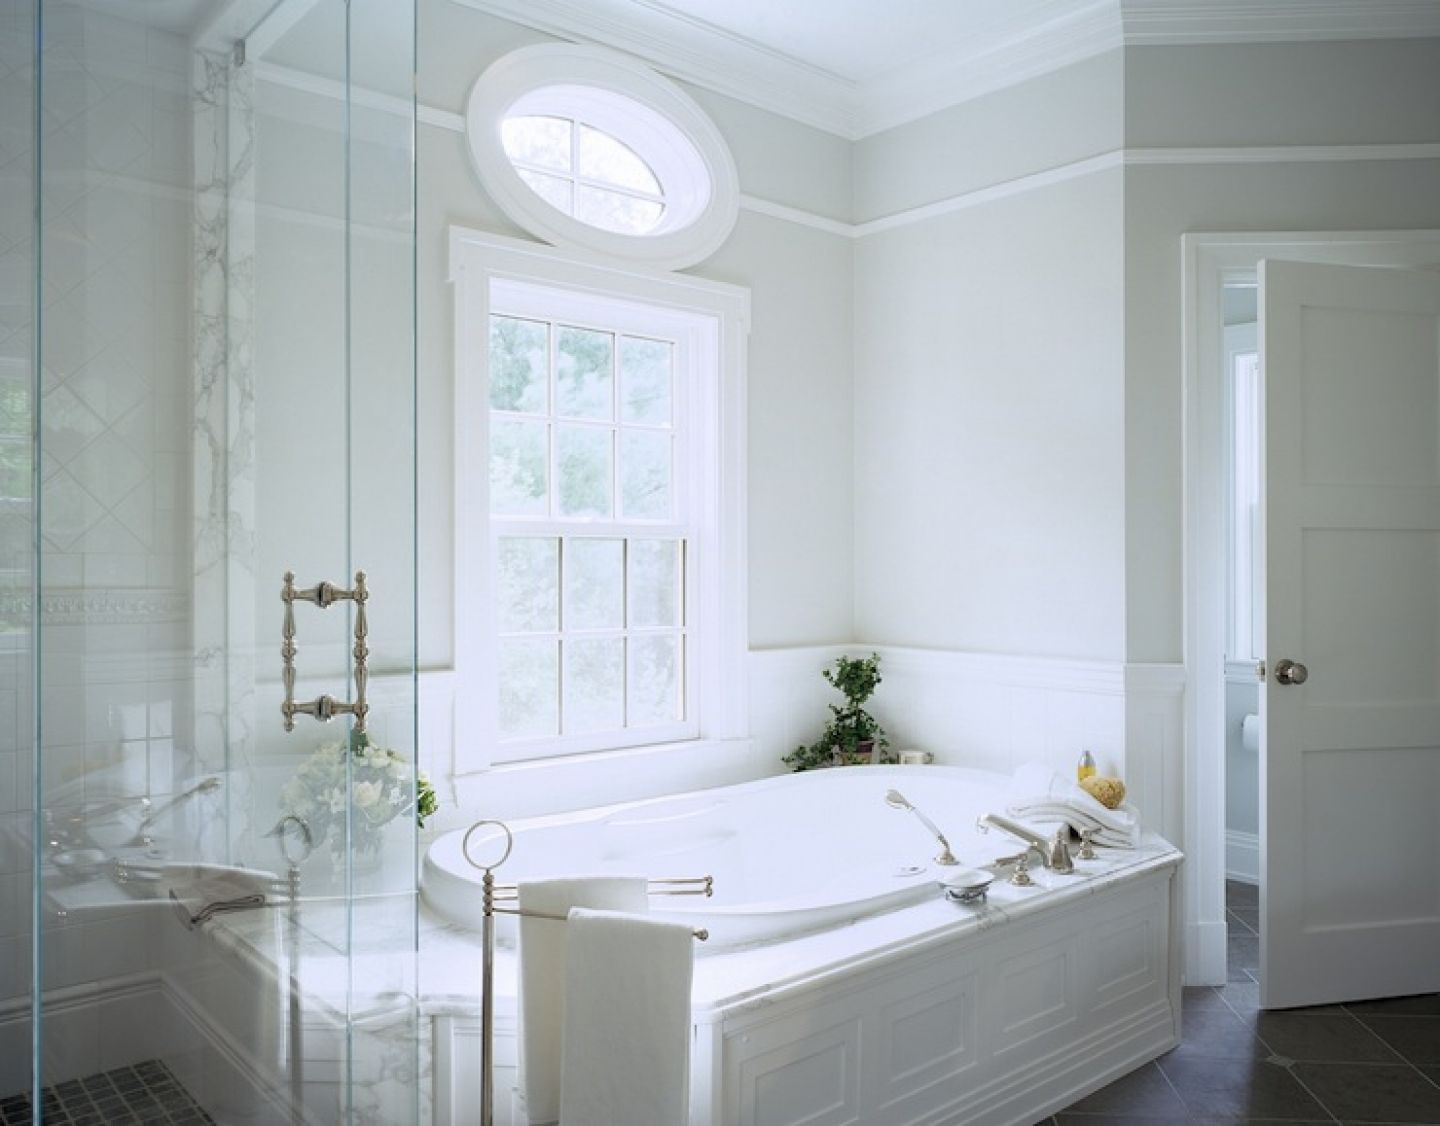 Gray walls spa tub seamless glass shower stunning master bathroom ...